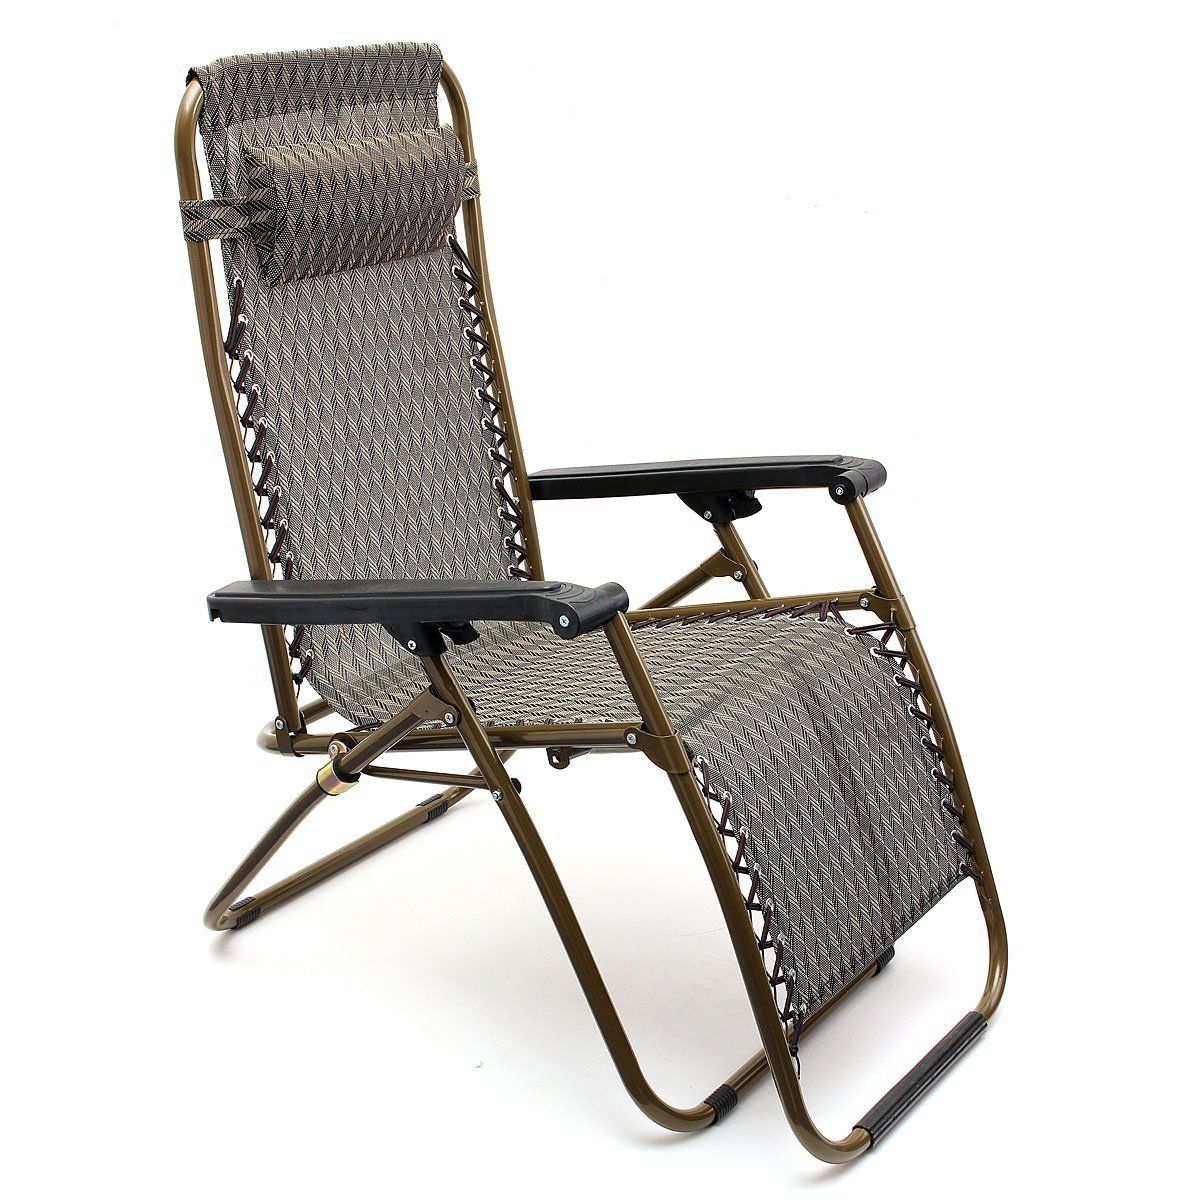 zero gravity pool chairs ikea stretch chair covers 2 lounge outdoor beach patio